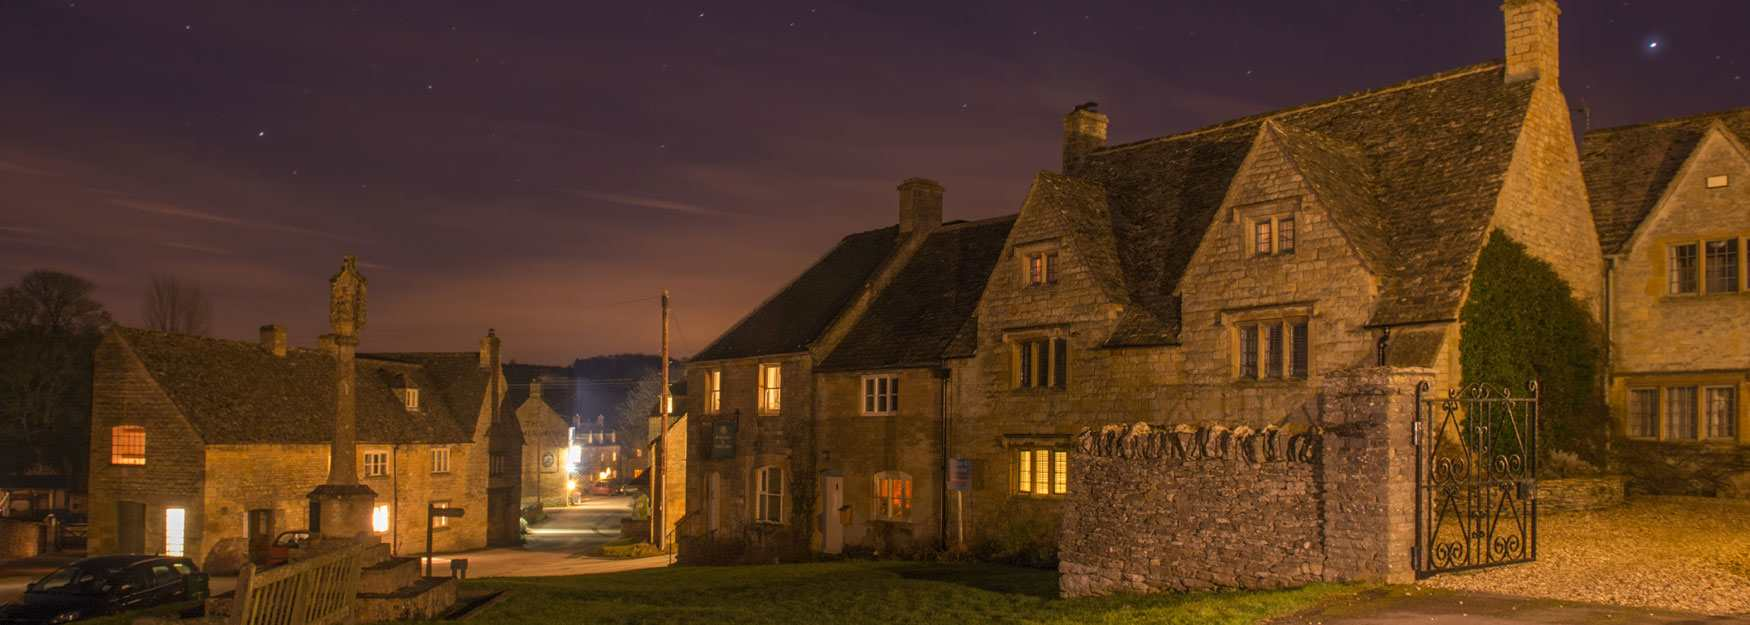 Another perfect night in the Cotswolds 